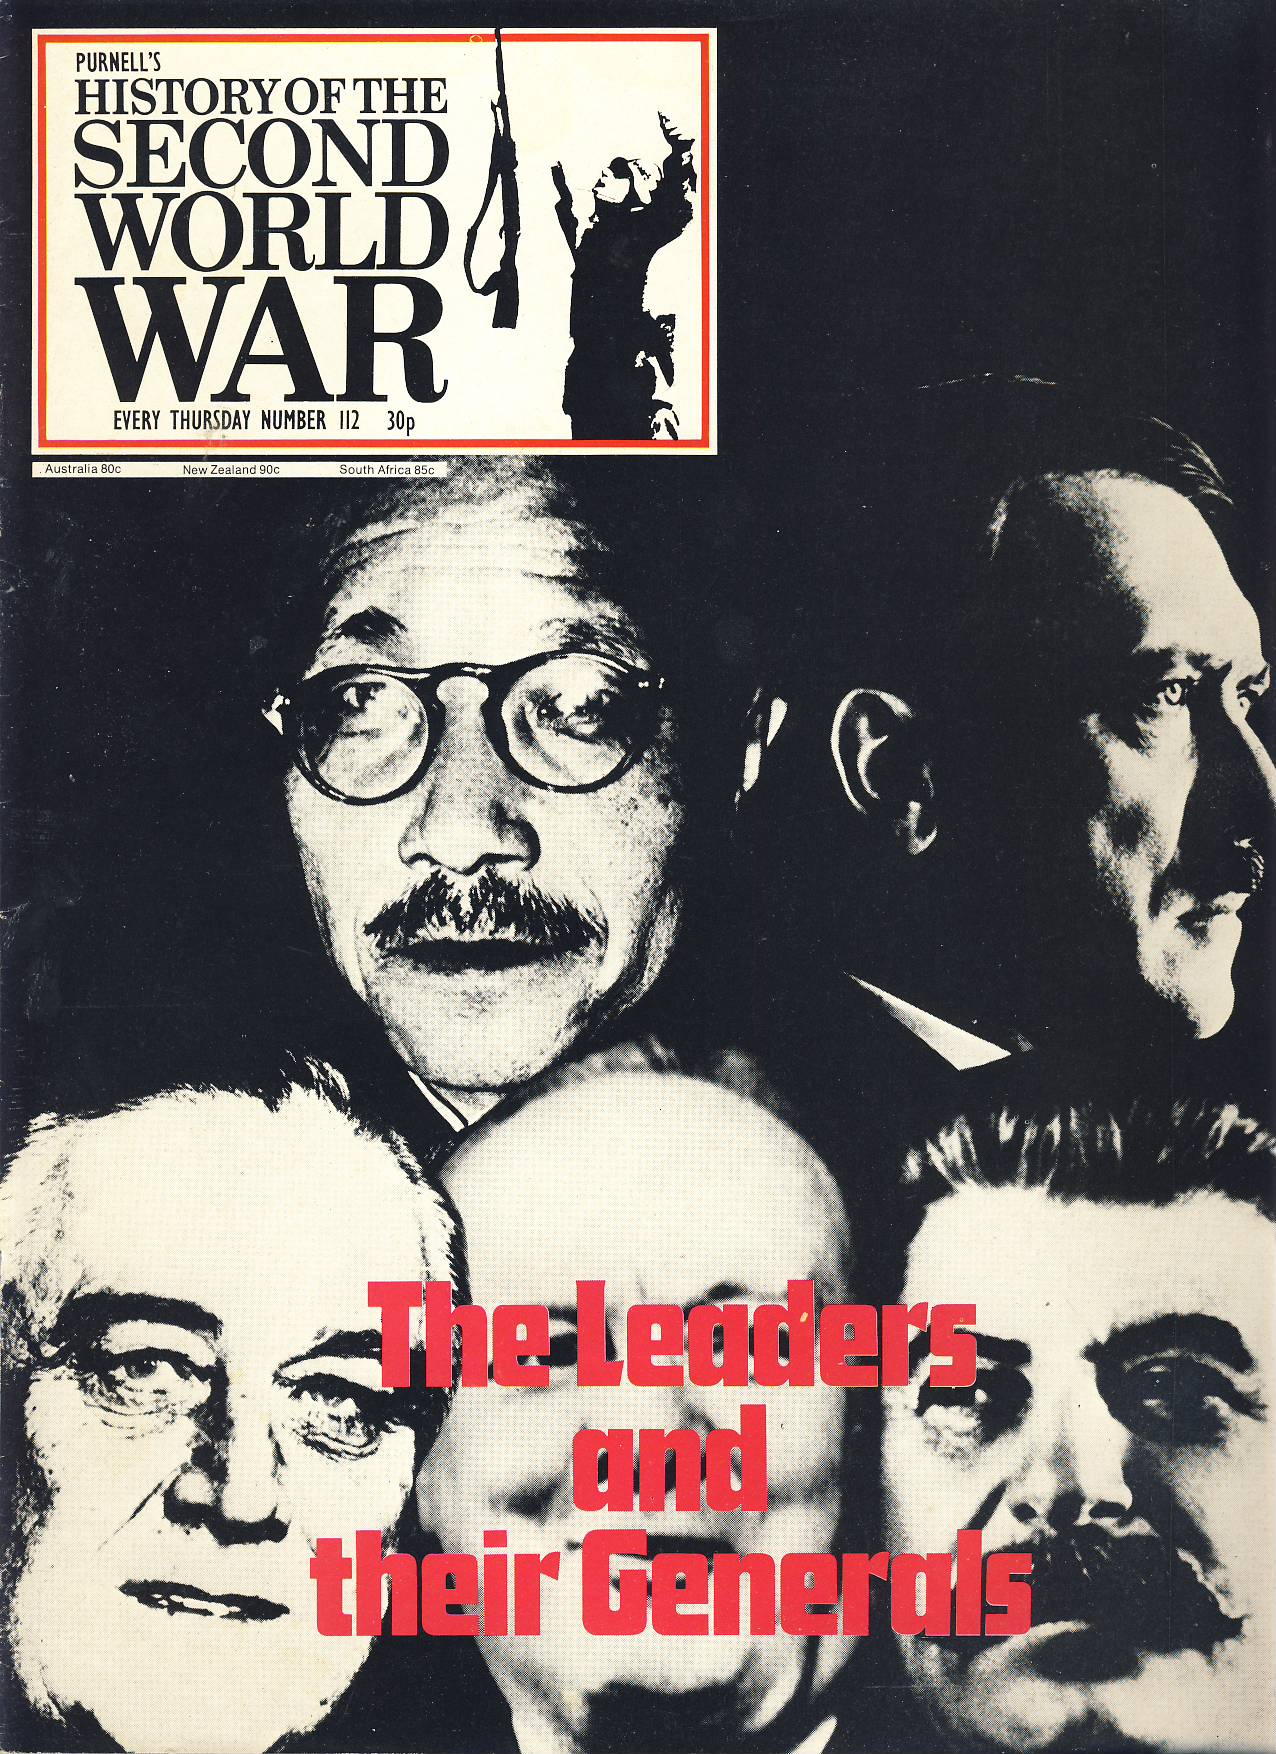 History of the Second World War Magazine #112 The Leaders and their Generals. Roosevelt